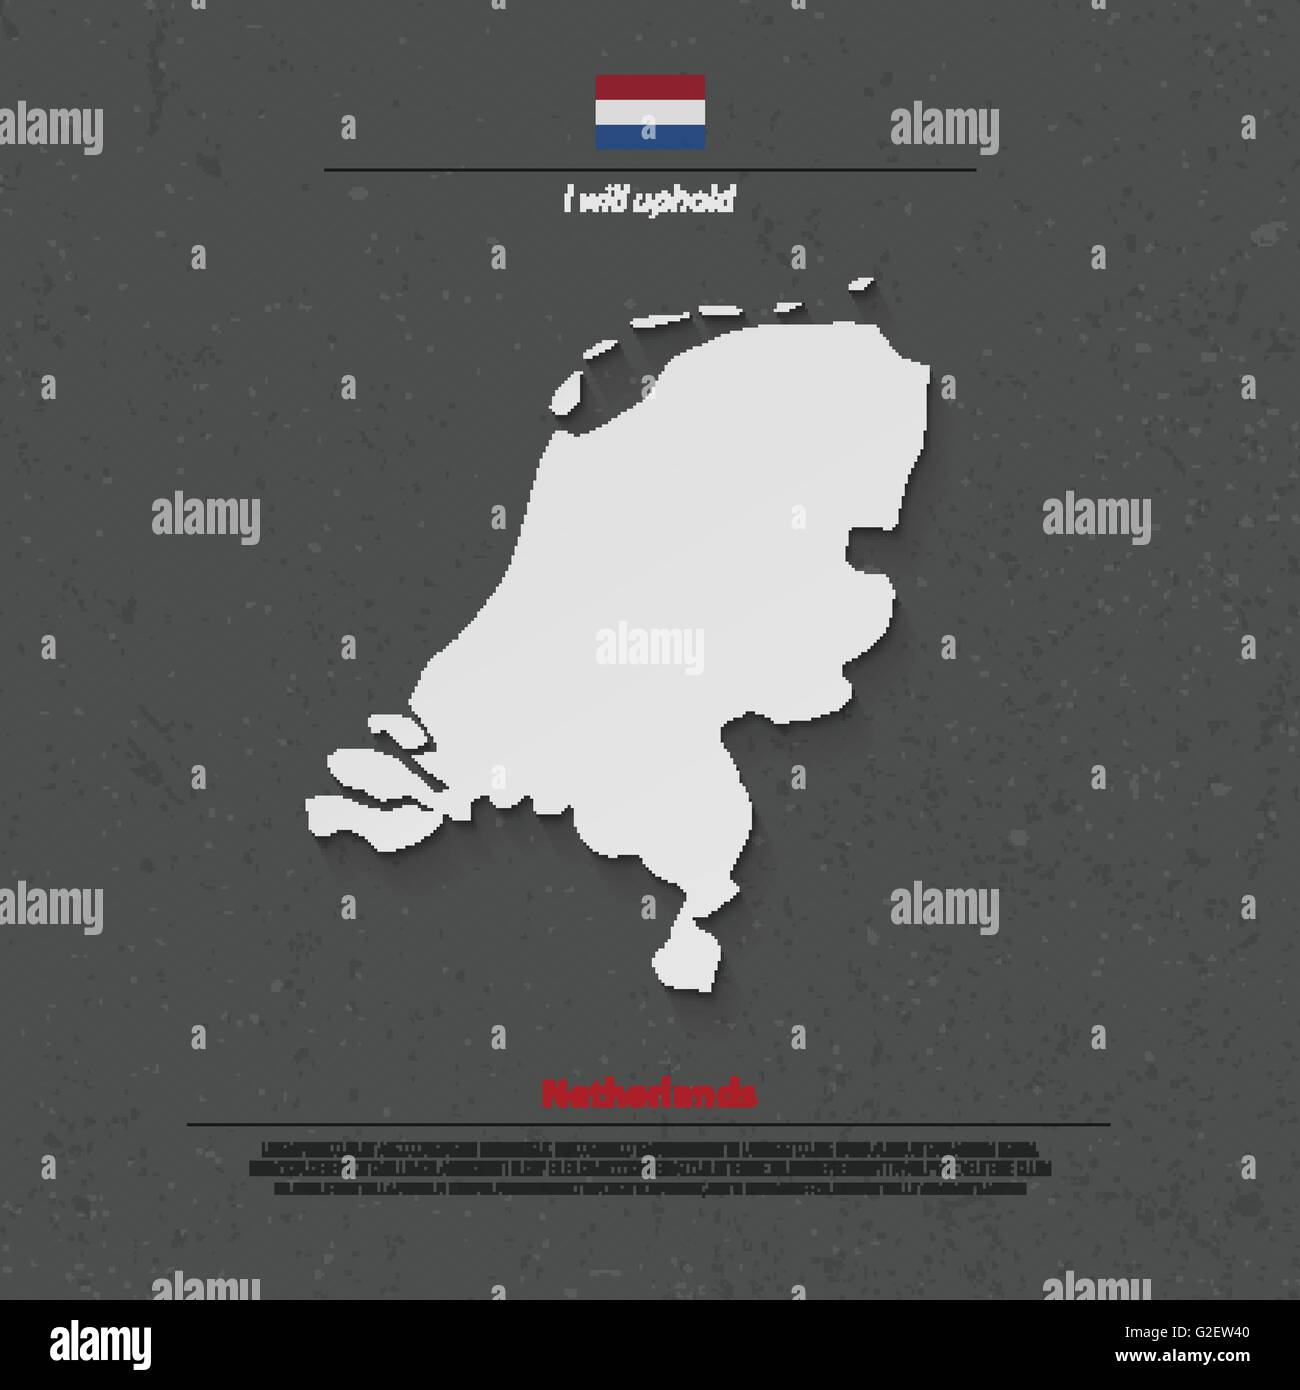 Kingdom of the Netherlands isolated map and official flag icons. vector Dutch political map 3d illustration. EU - Stock Vector